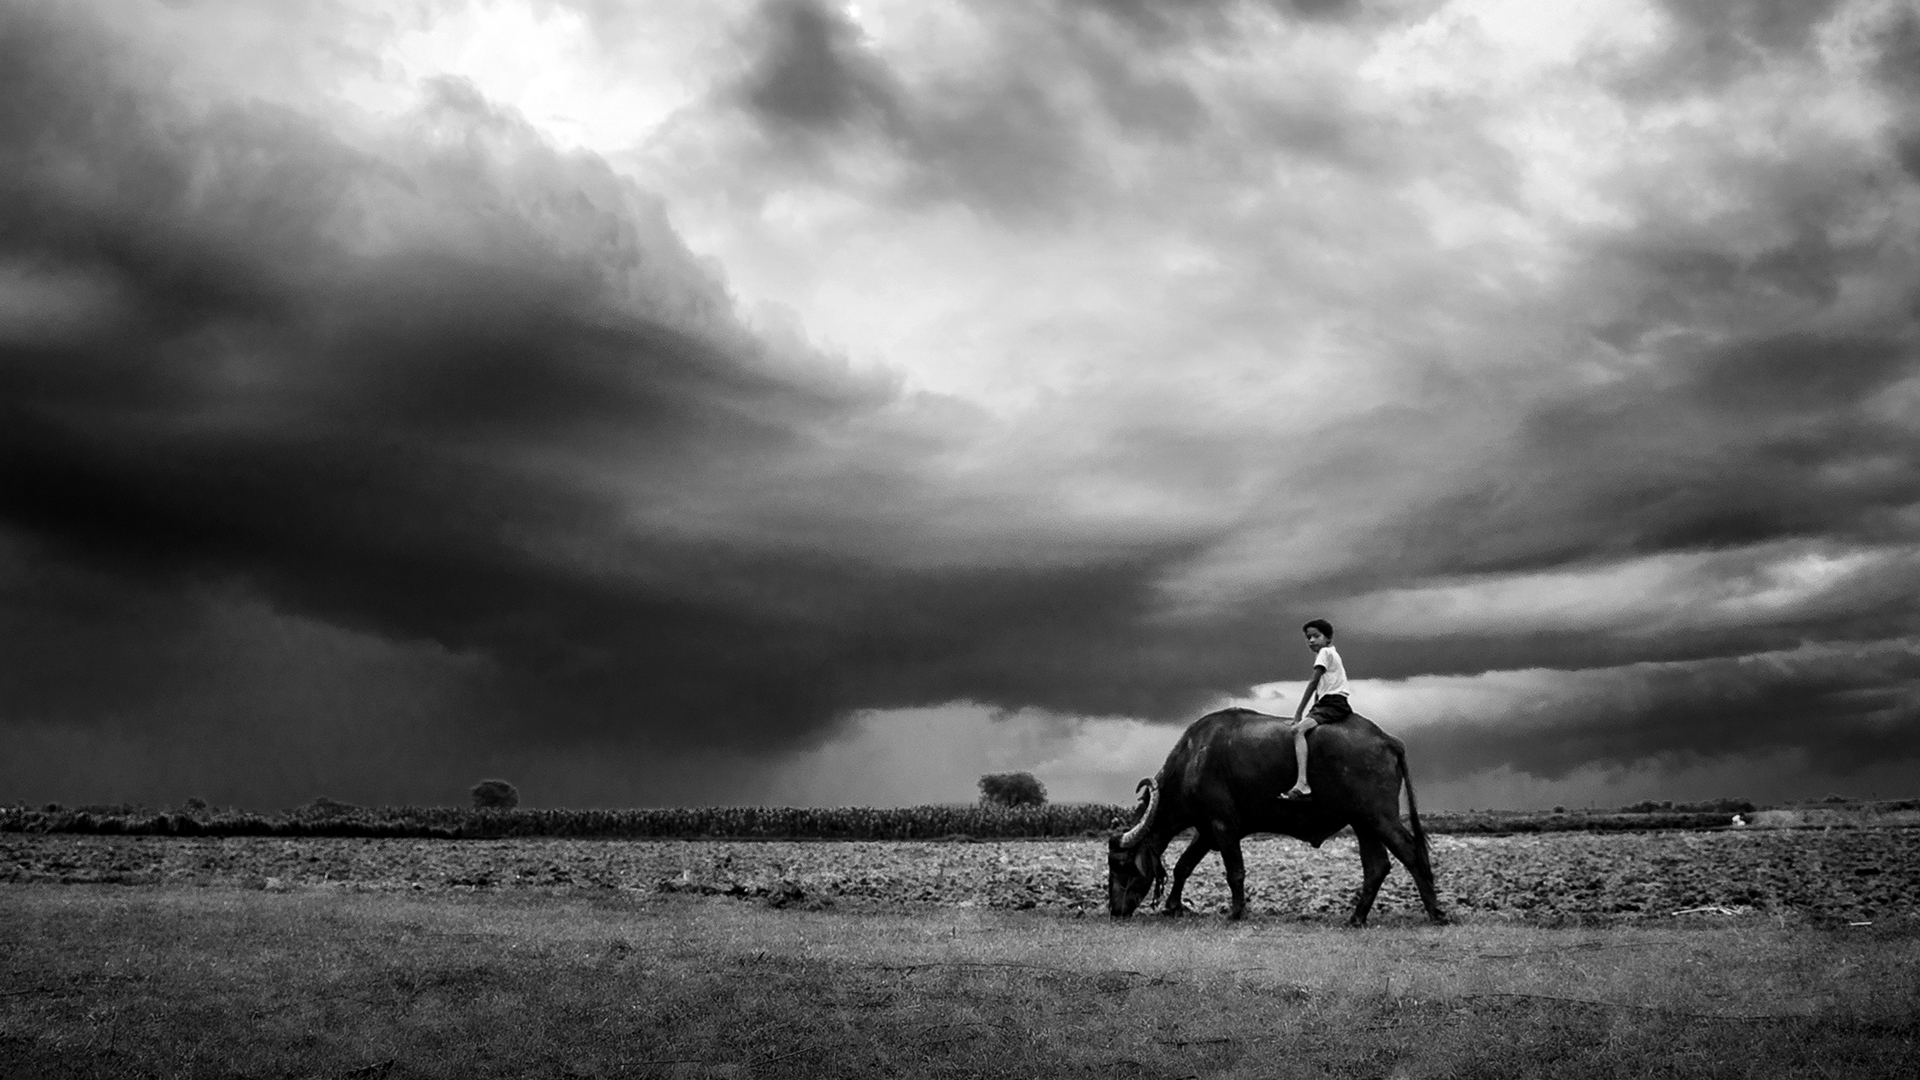 The village boy is having fun with his Buffalo Ride and the sky is also in playful mood with the rainy dark clouds.